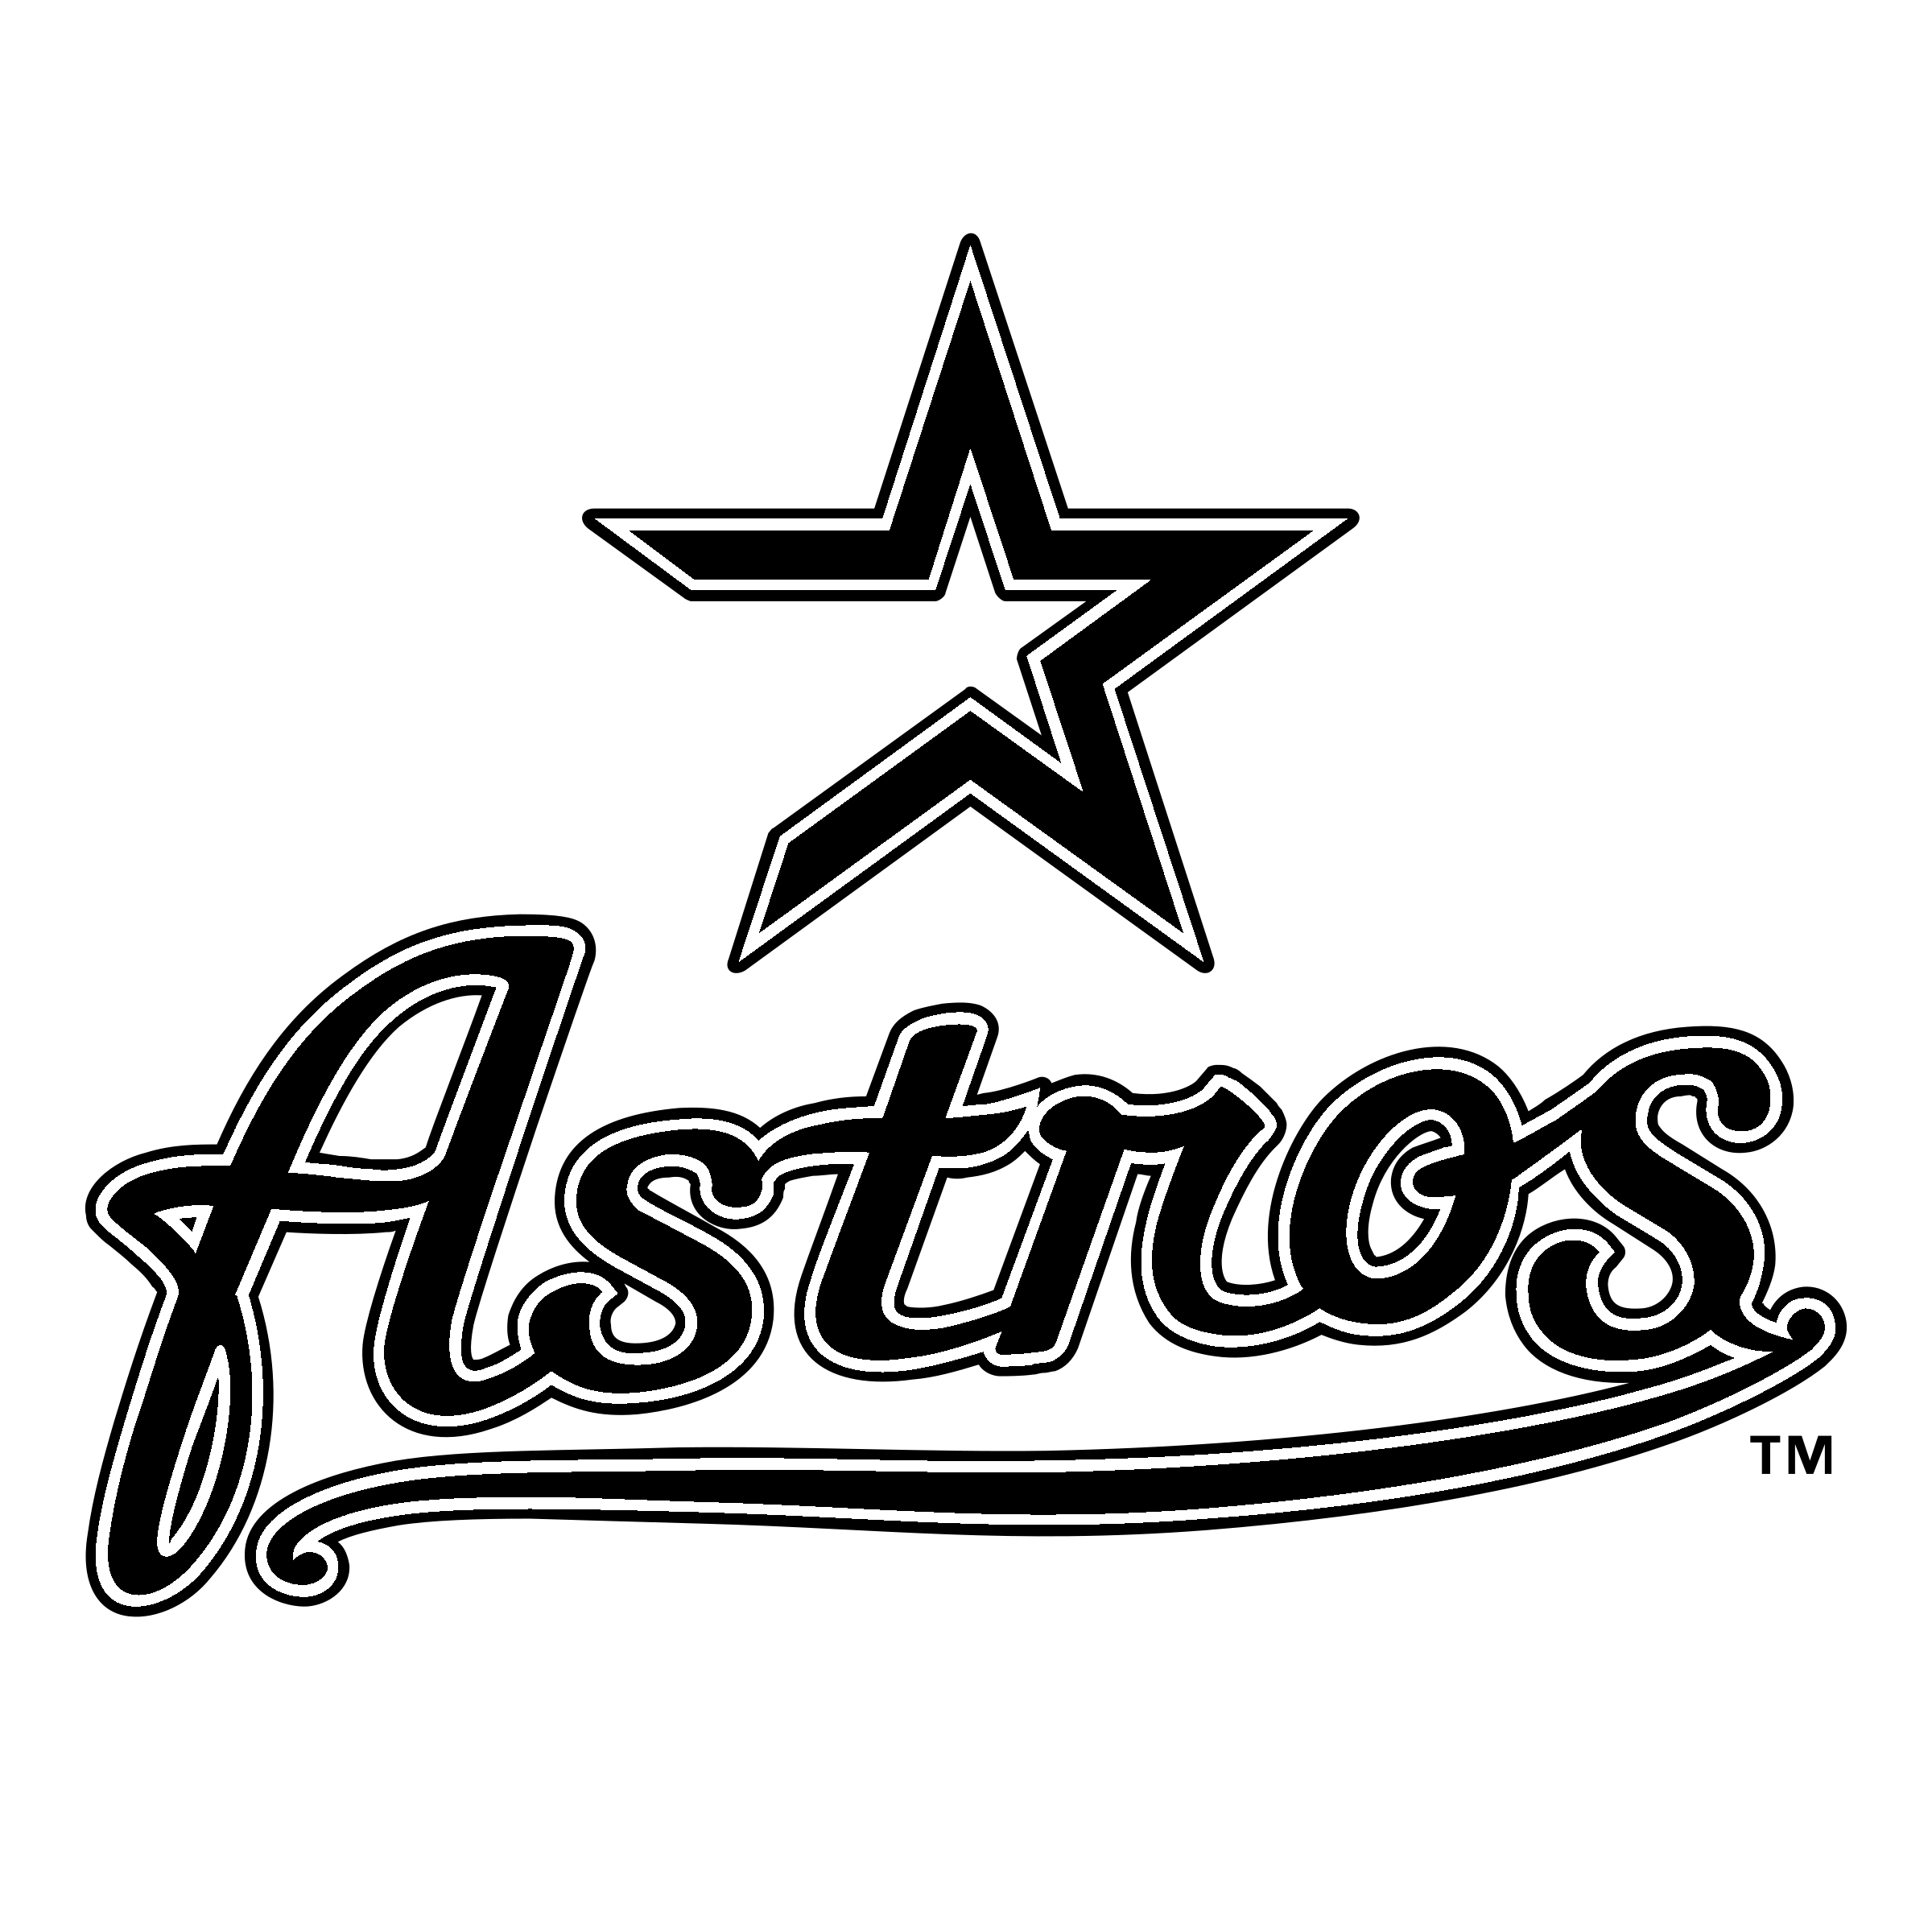 Houston astro clipart png transparent library Houston Astros Logo MLB Decal - minecraft: story mode png ... png transparent library